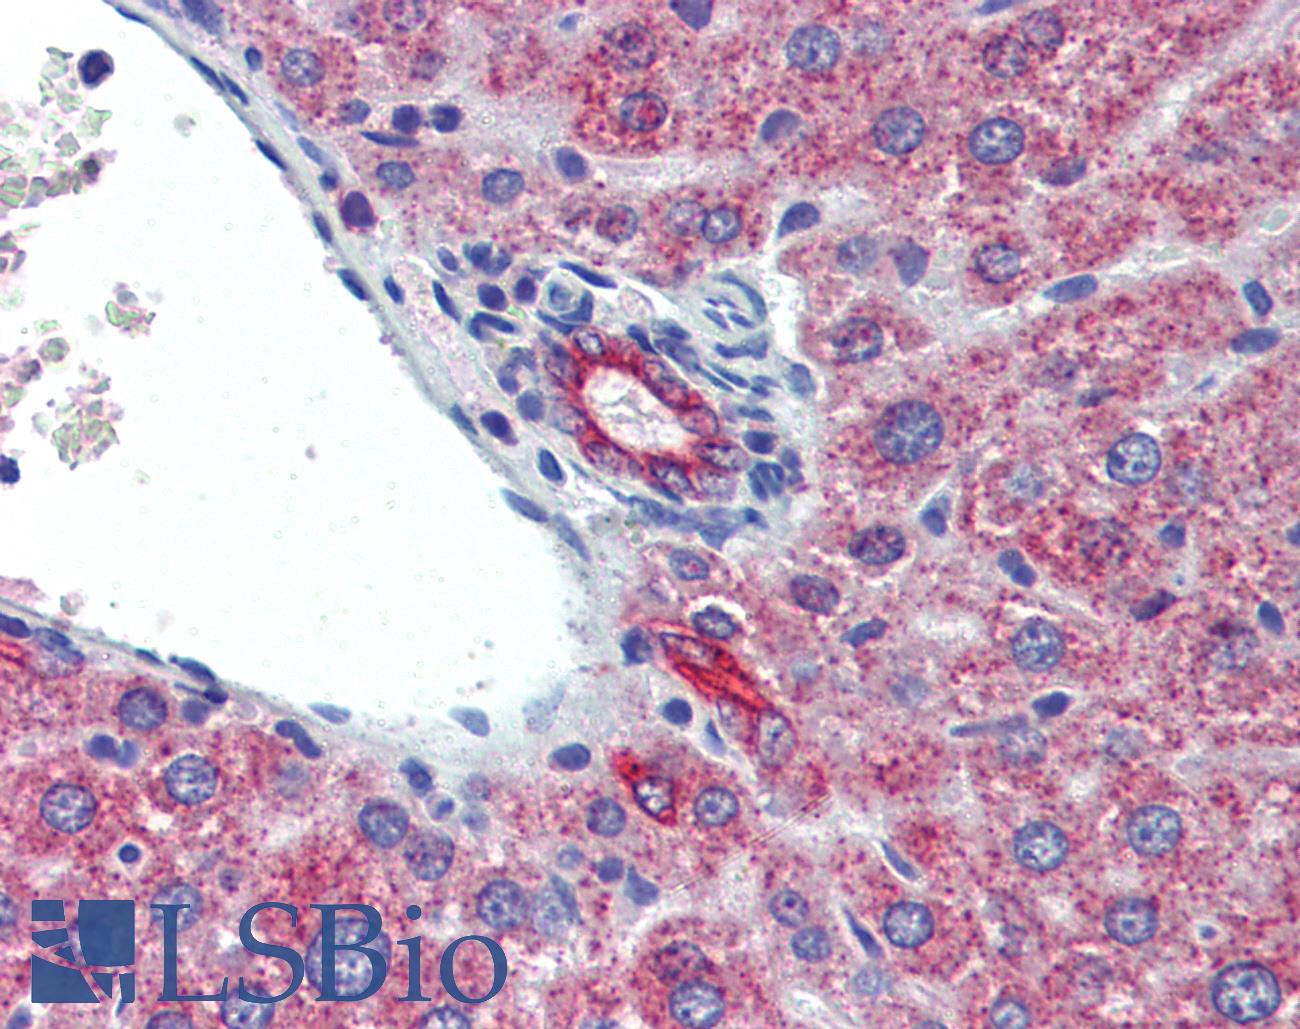 IL23A / IL-23 p19 Antibody - Anti-IL-23 p19 antibody IHC staining of mouse liver. Immunohistochemistry of formalin-fixed, paraffin-embedded tissue after heat-induced antigen retrieval. Antibody concentration 5 ug/ml.